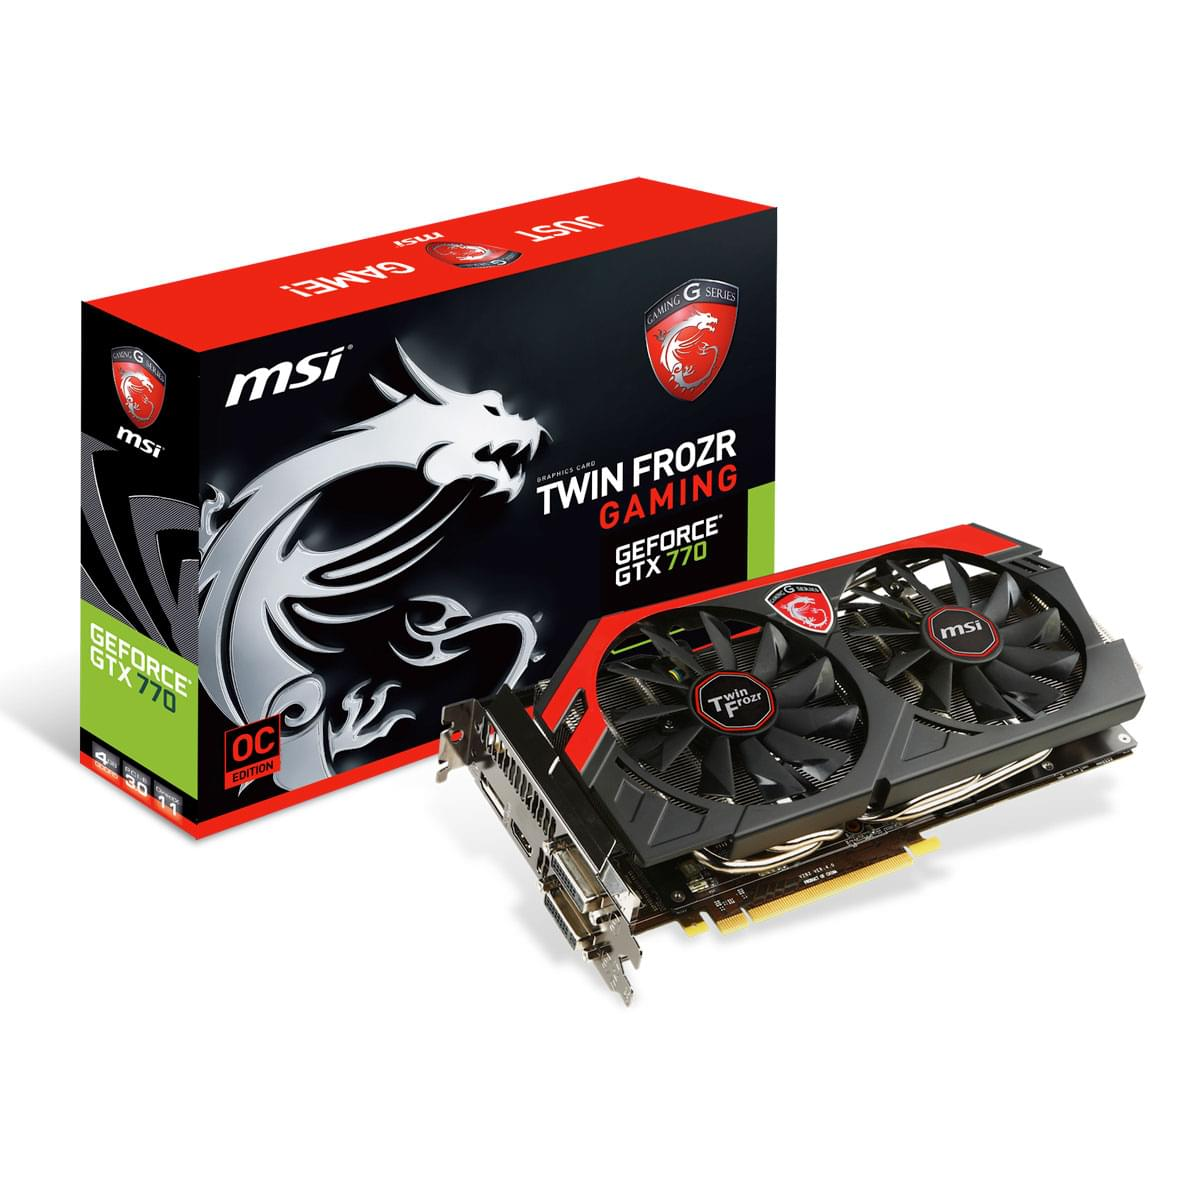 MSI N770 TF 4GD5/OC 4Go - Carte graphique MSI - Cybertek.fr - 0